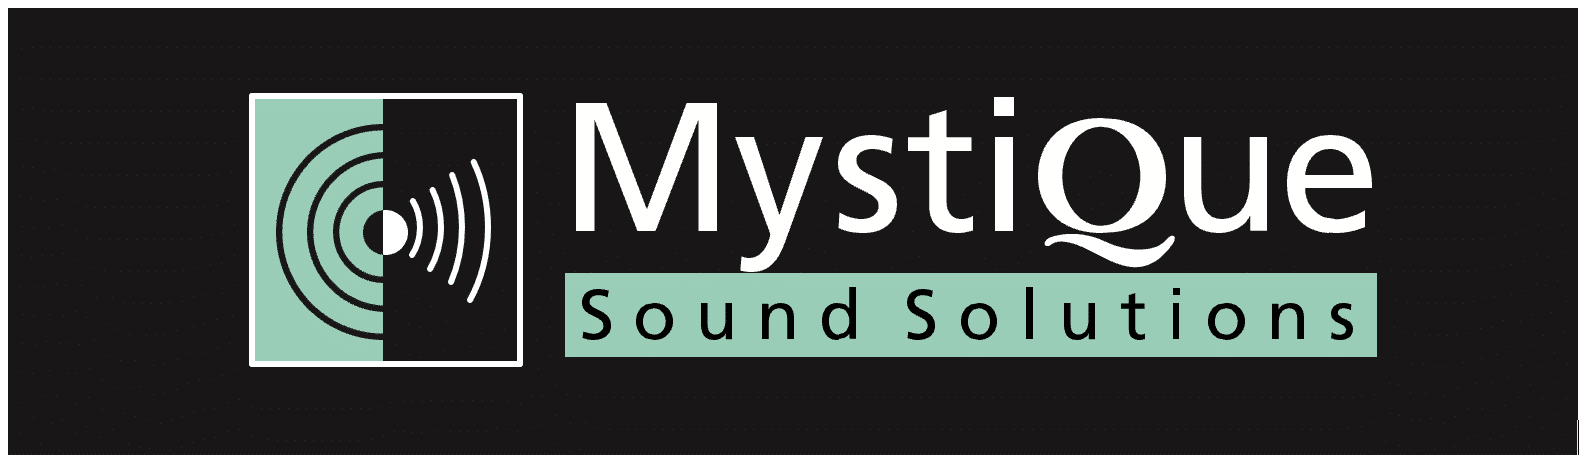 MystiQue Sound Solutions | Twin Cities Event Production & Staging